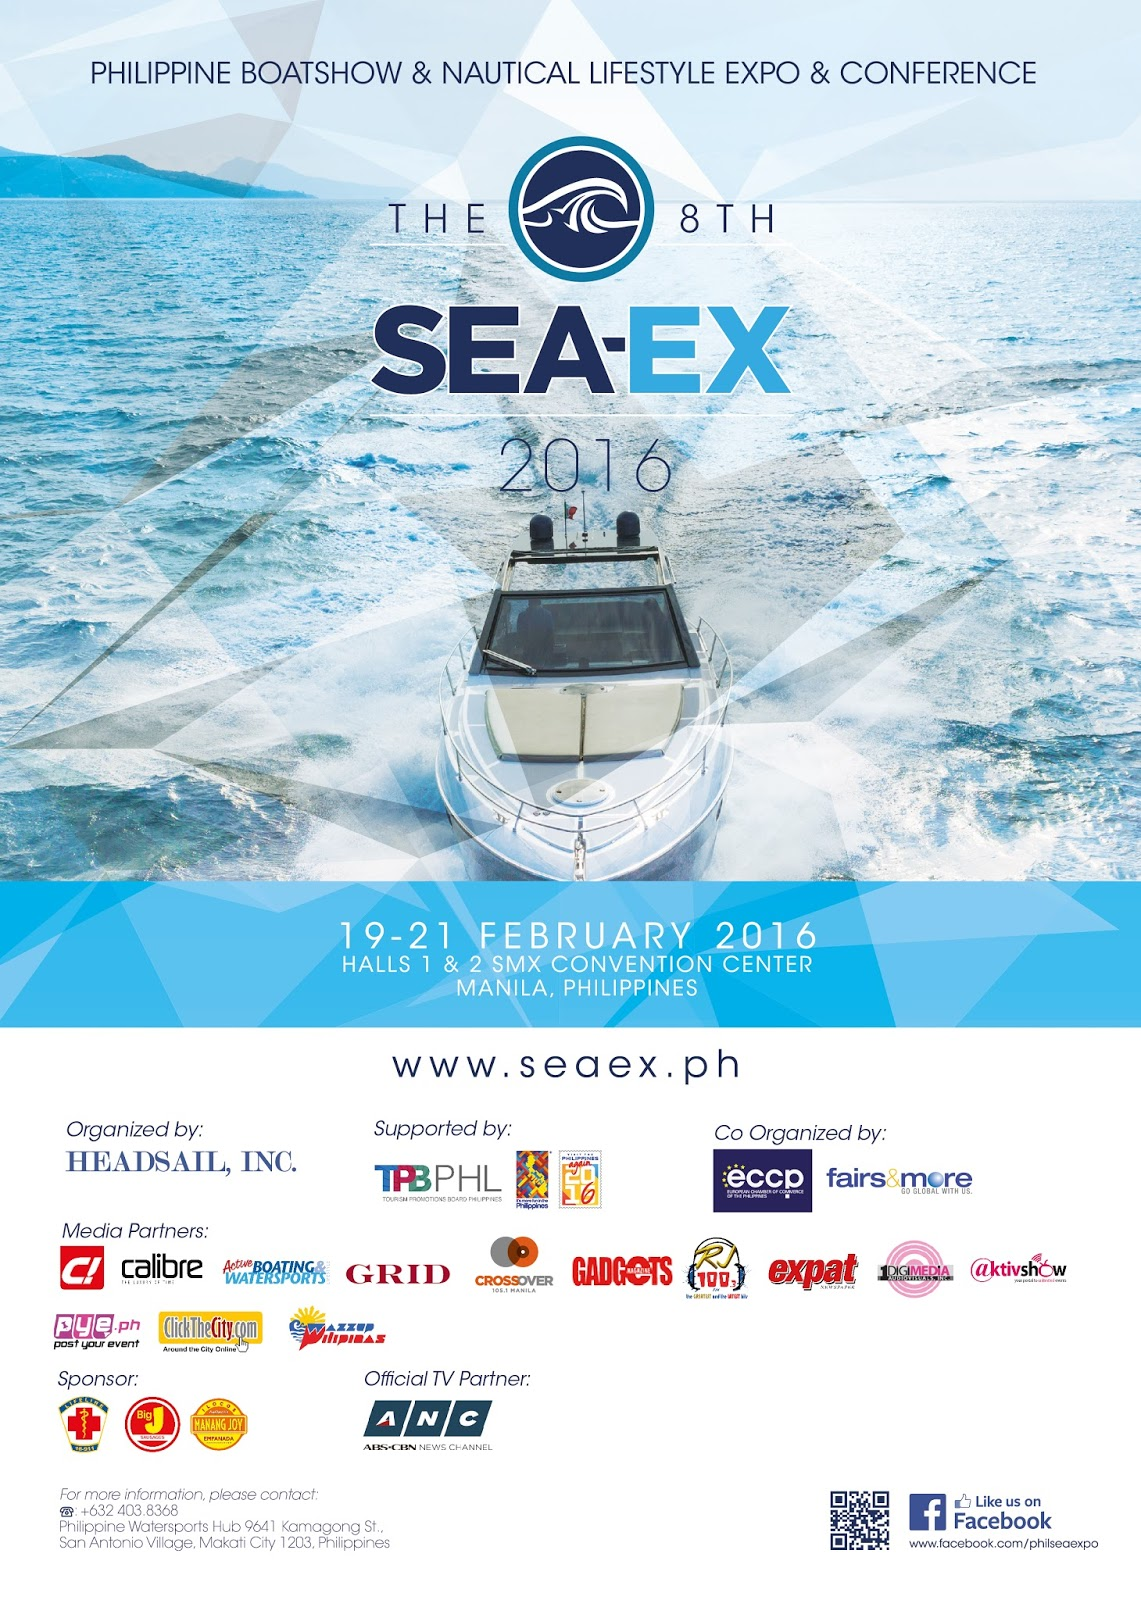 Sea-Ex: The 8th Philippine Boat Show and Nautical Lifestyle Expo!